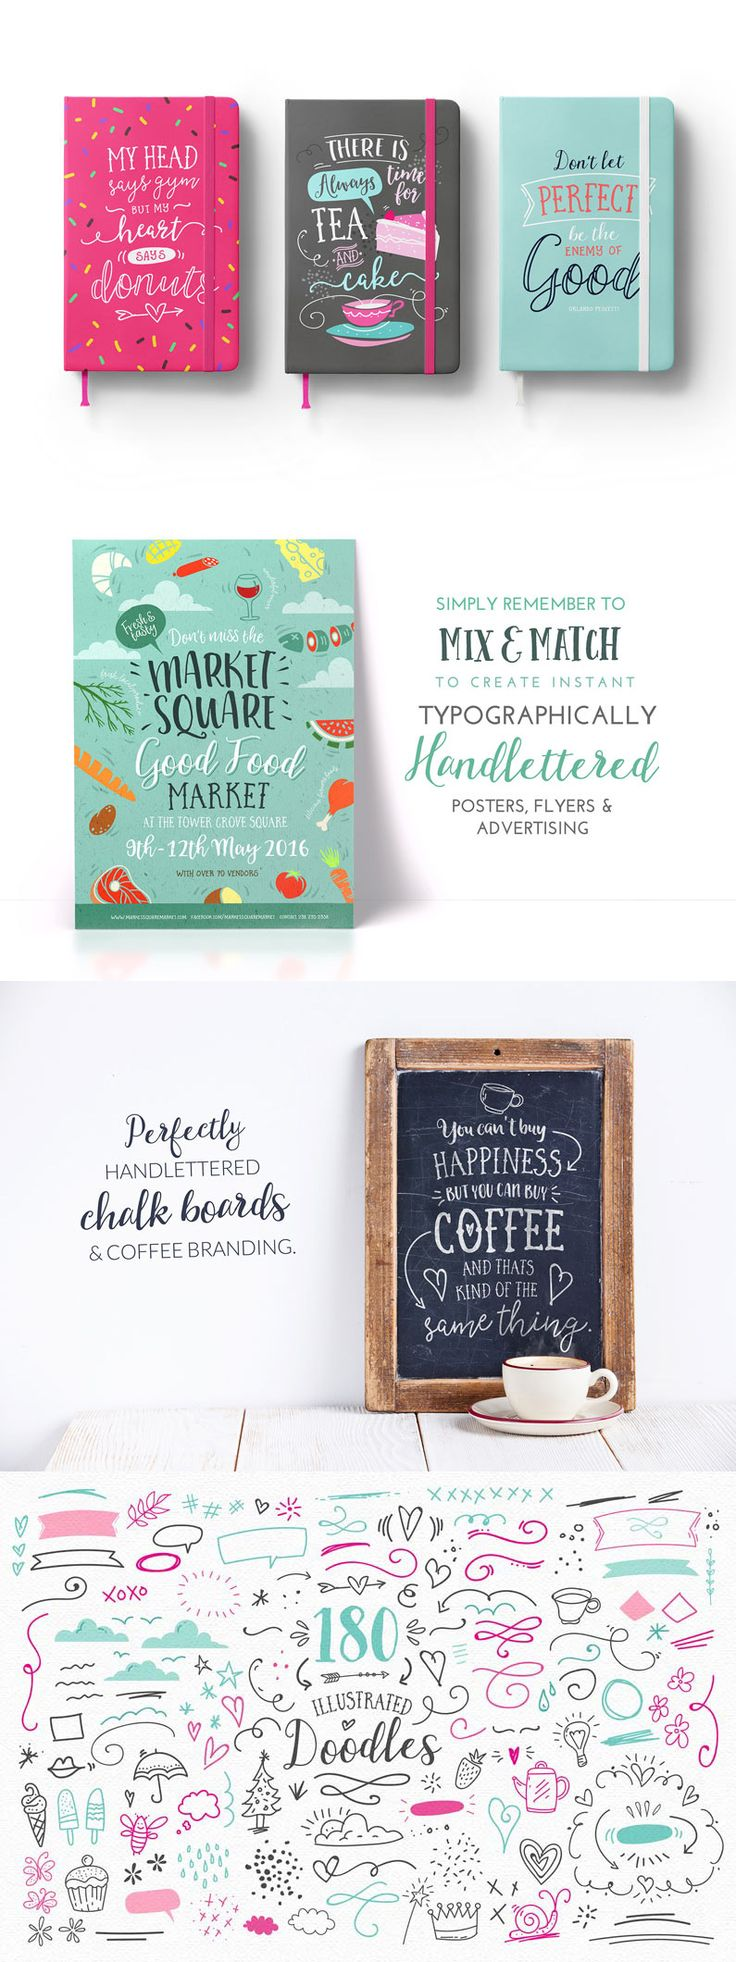 cursive fonts for wedding cards%0A    Handlettered  brush  designready fonts perfect for branding  logos